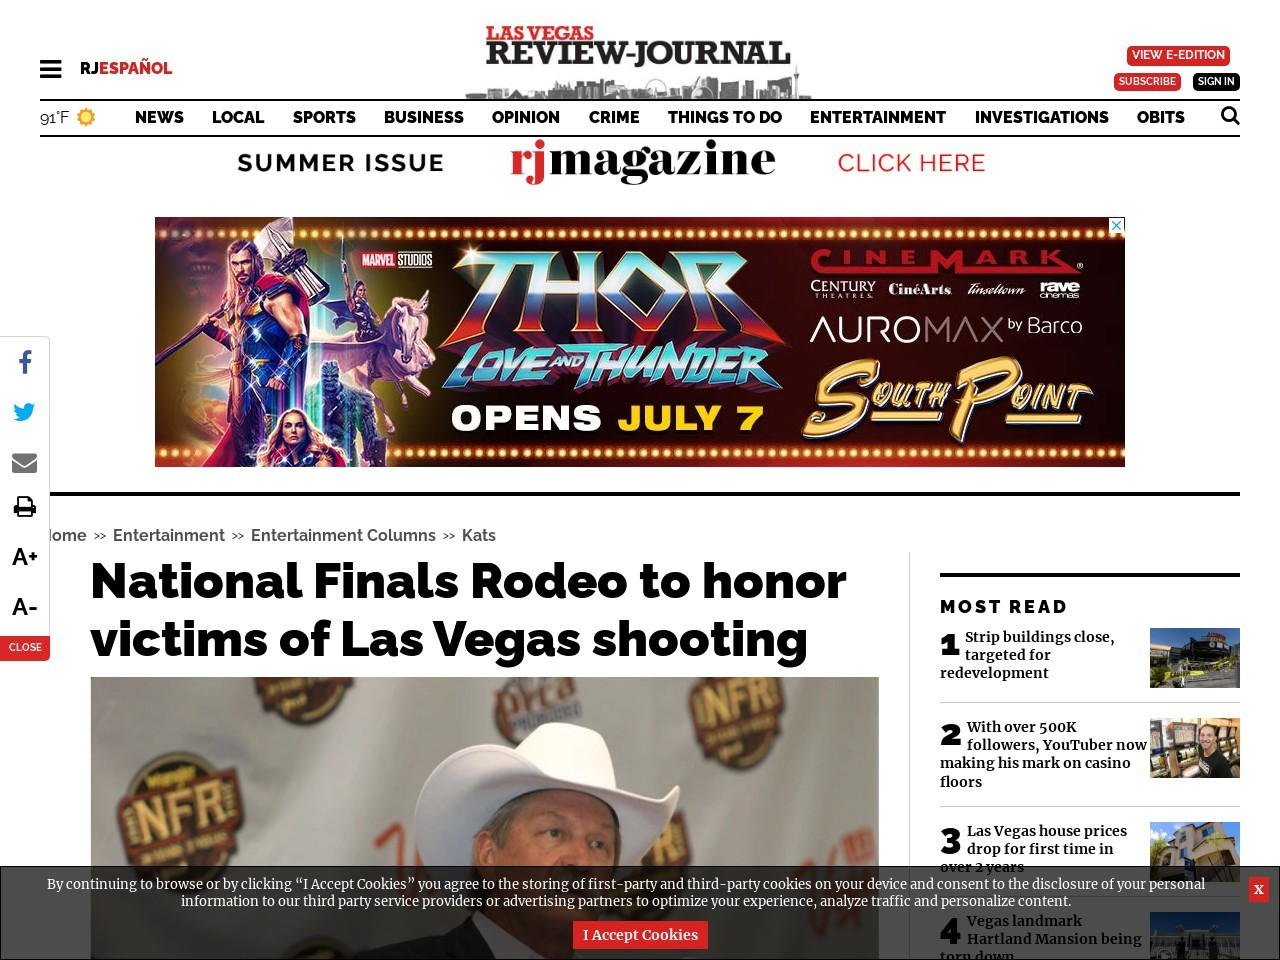 National Finals Rodeo to honor victims of Las Vegas shooting